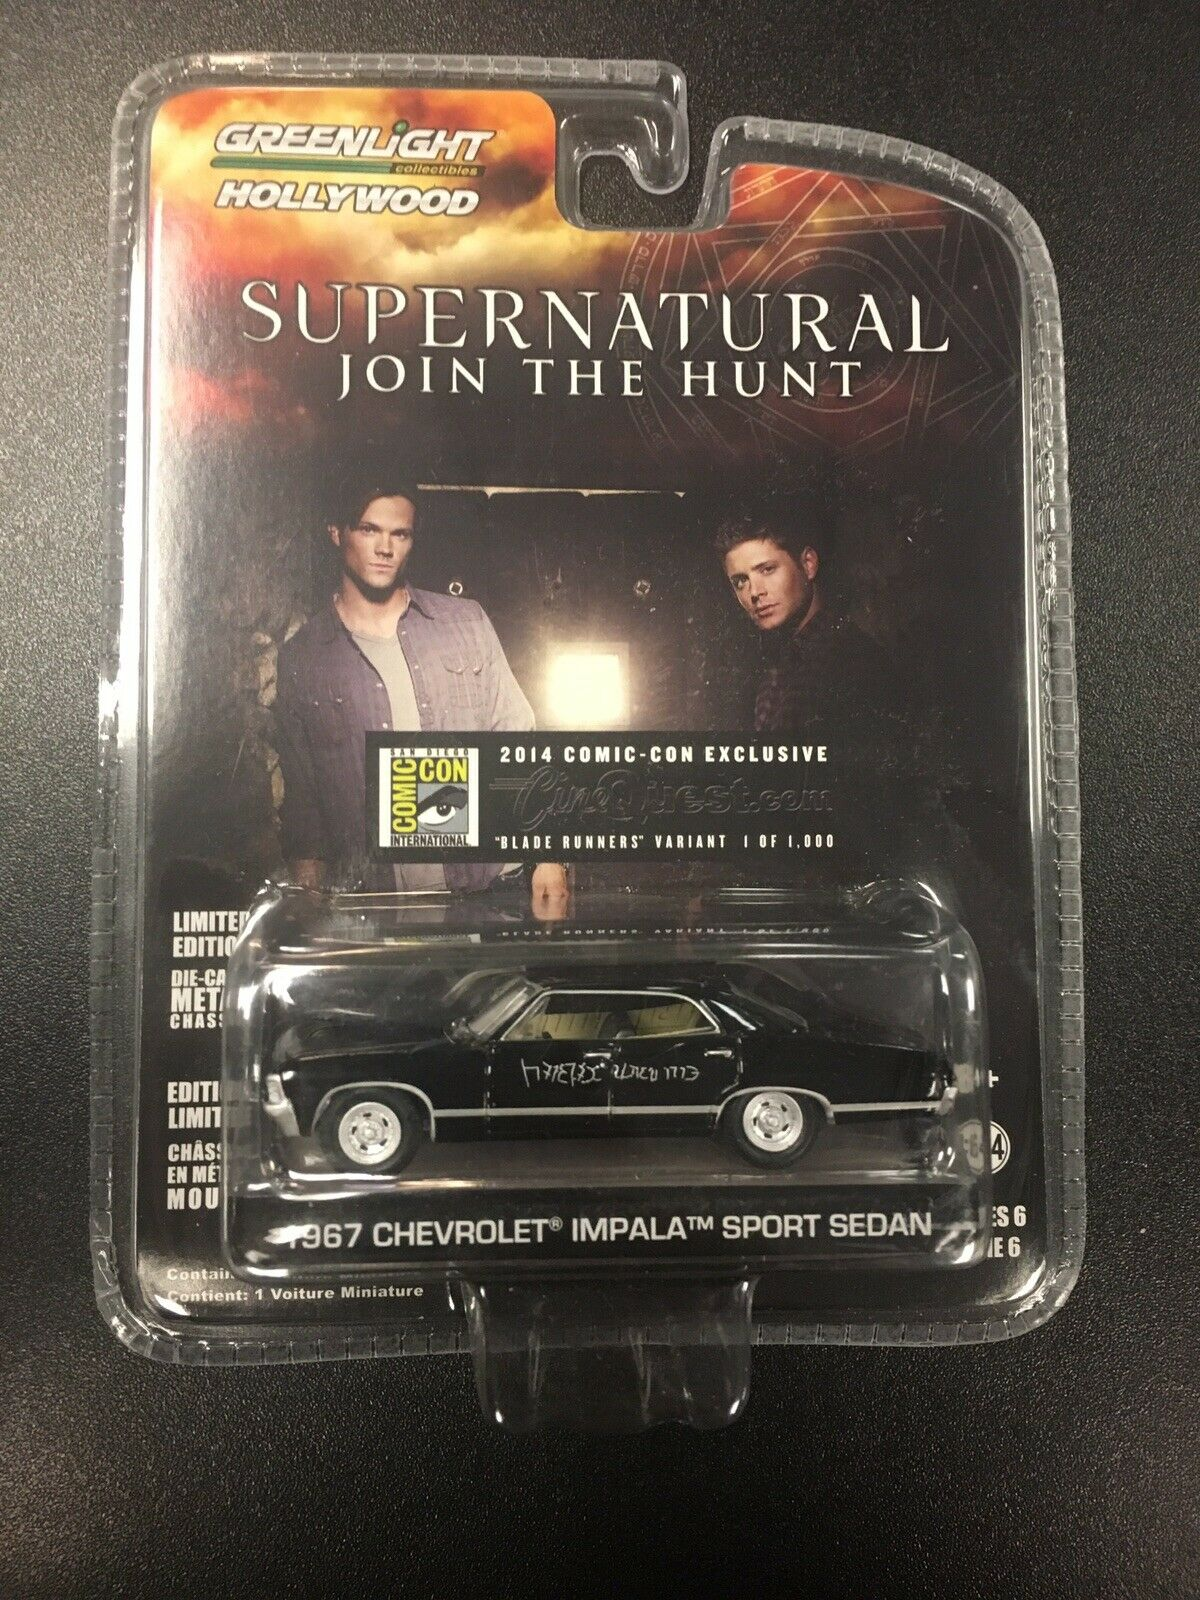 verdelight 2014 Comic Con sobrenatural 1967 Impala